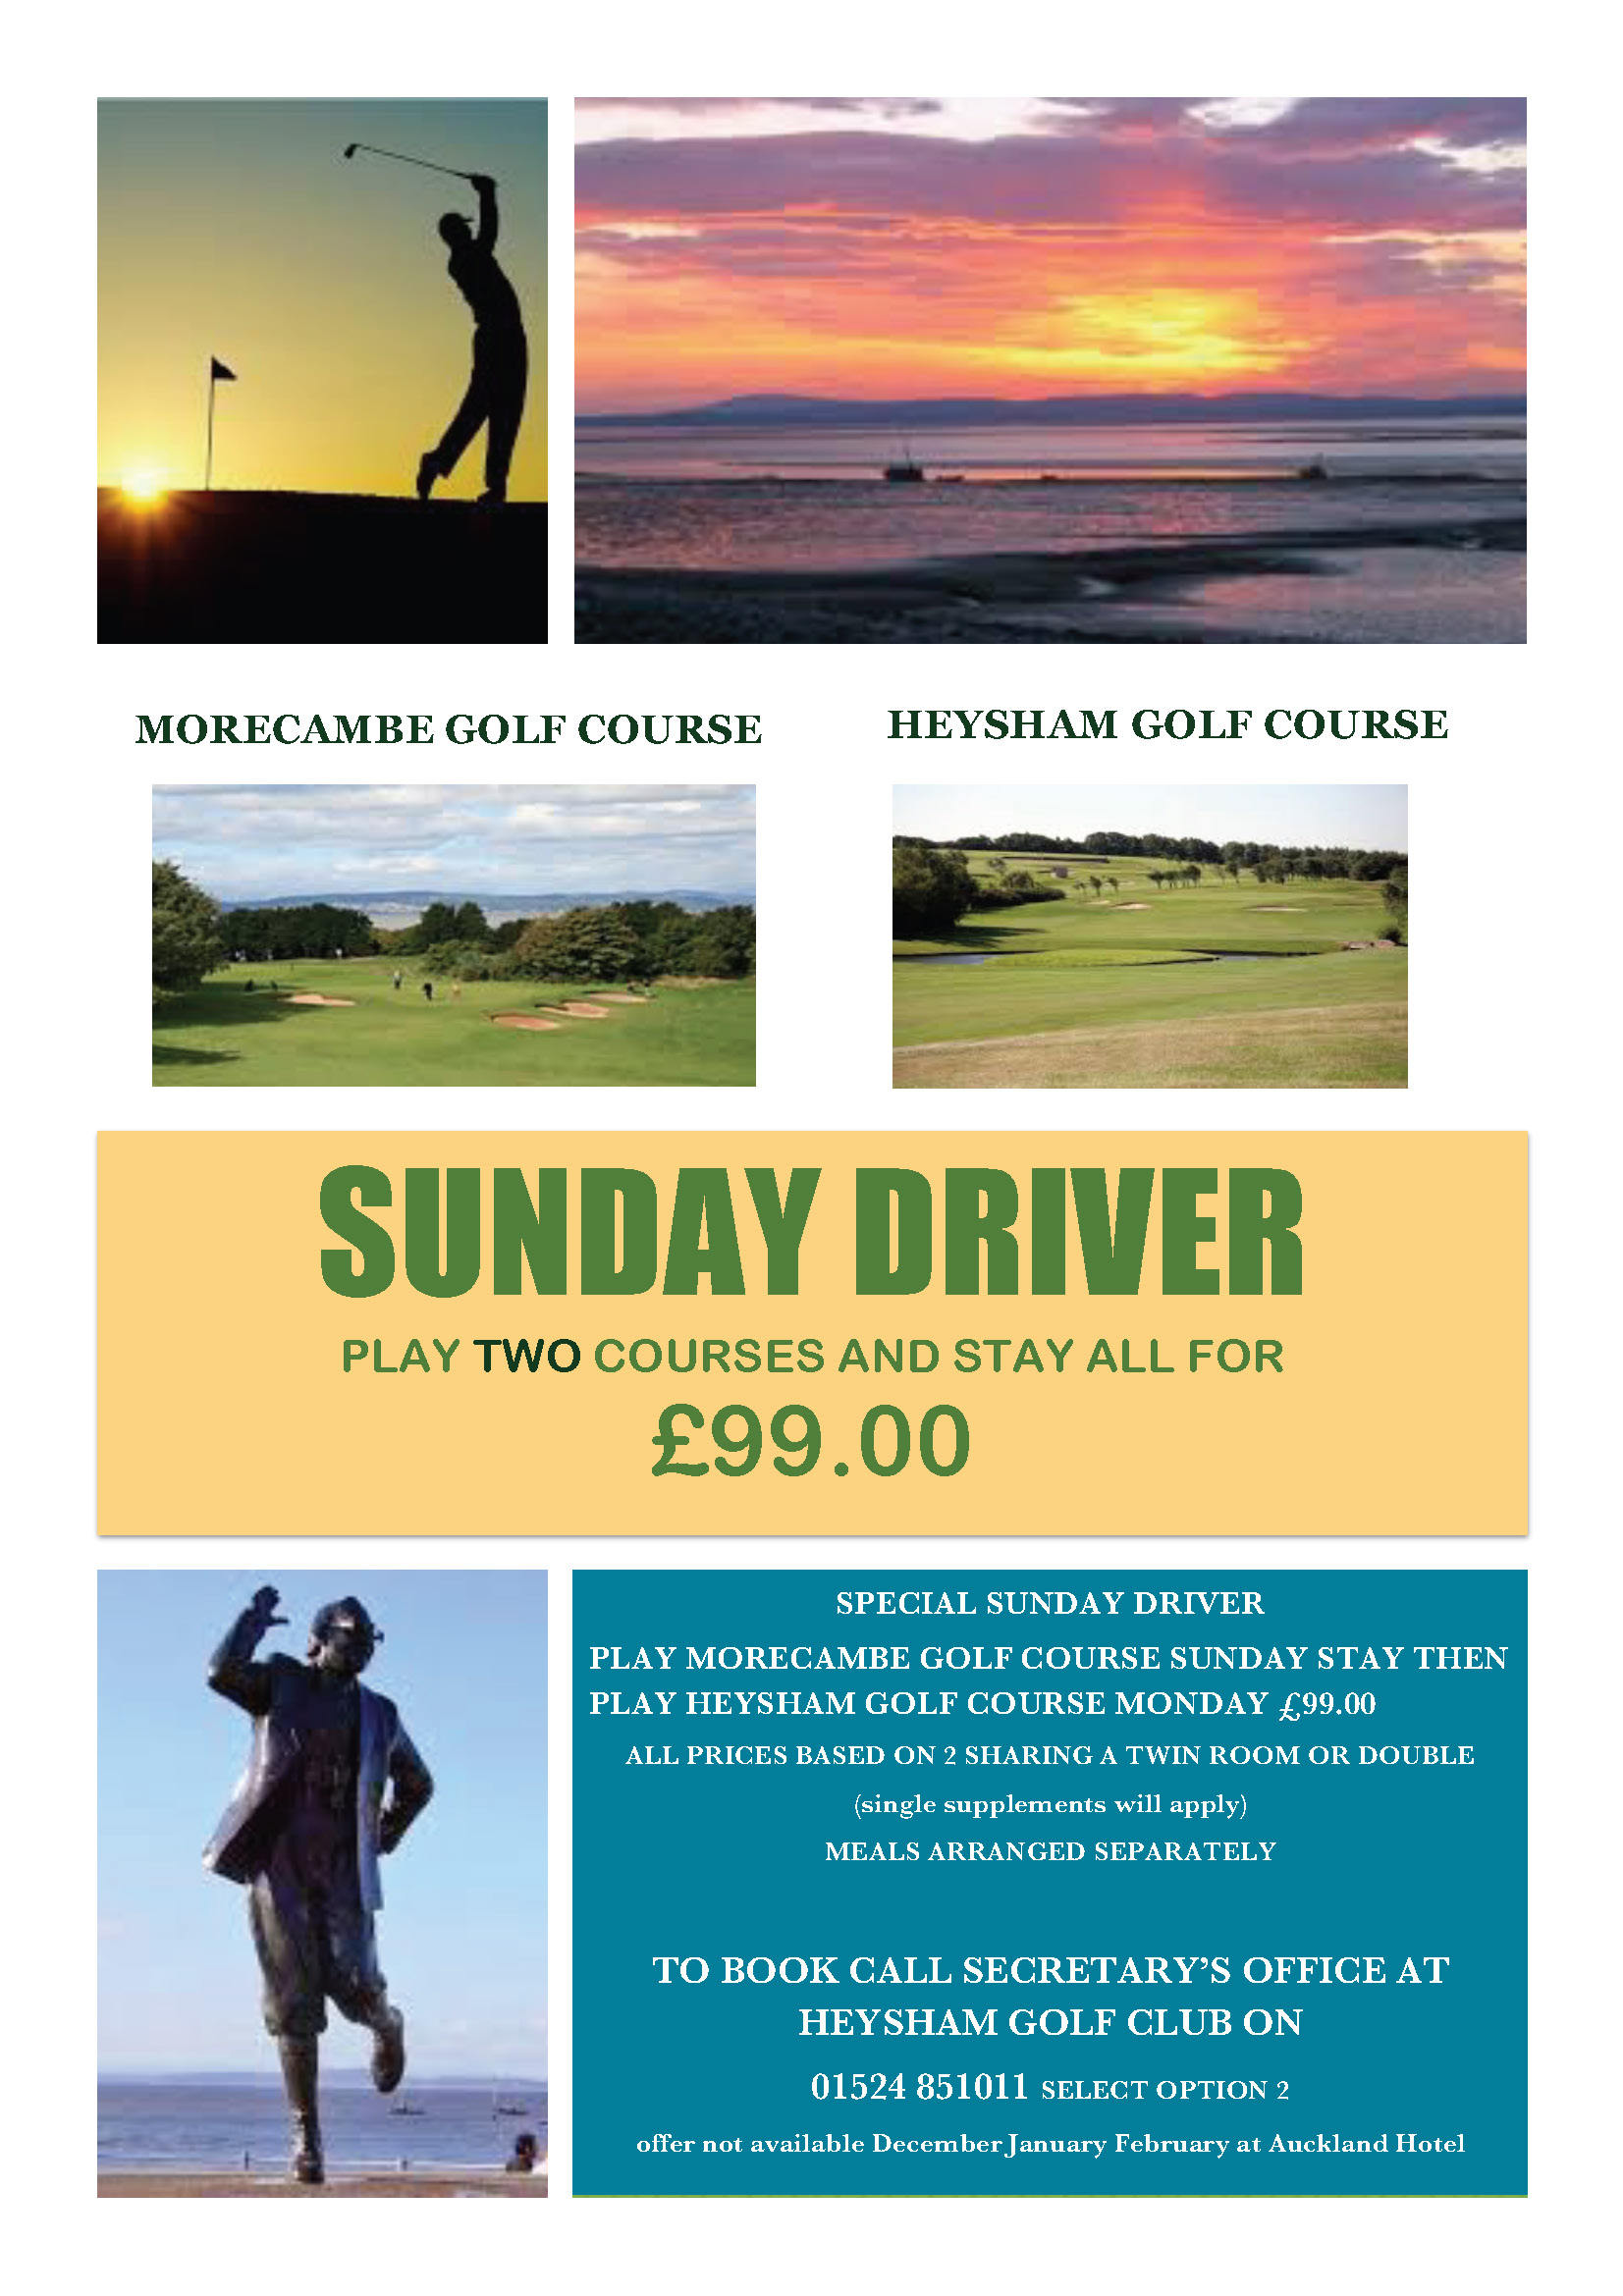 Sunday Driver Offer